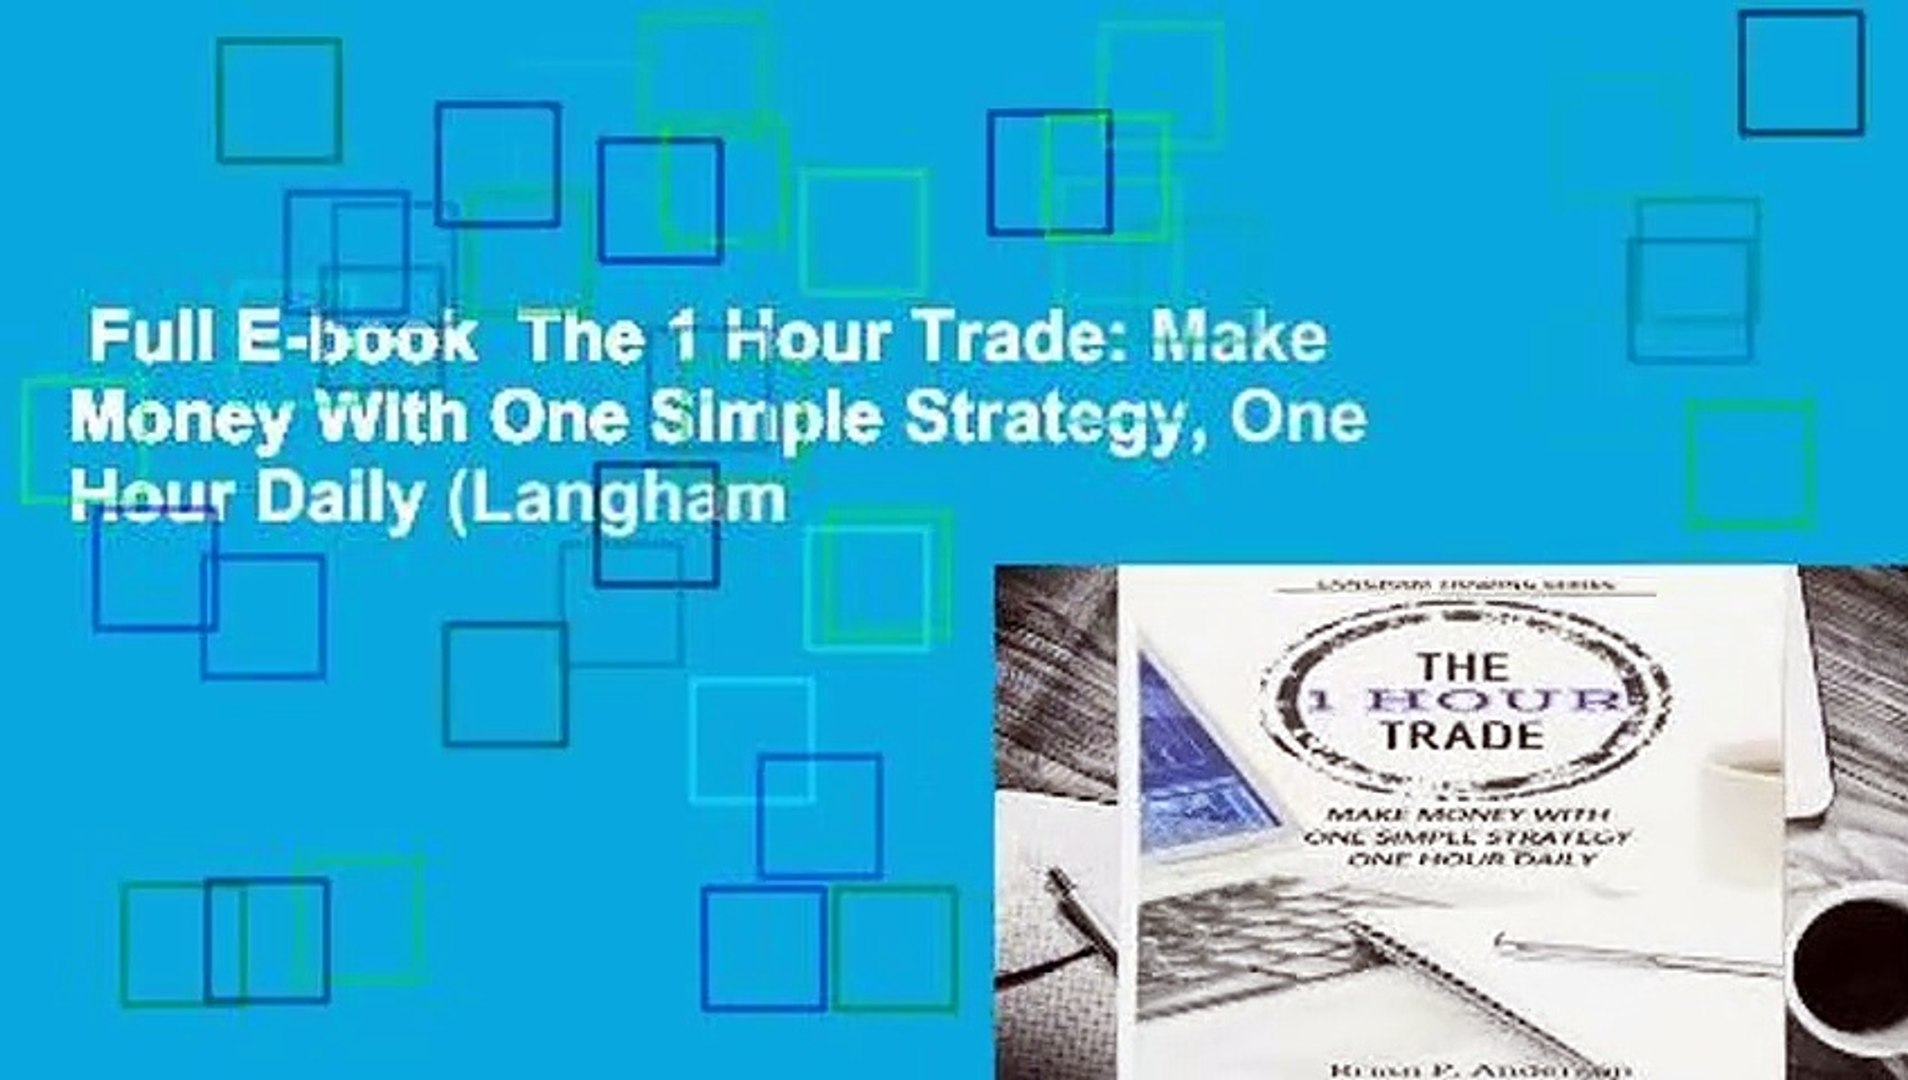 Full E-book The 1 Hour Trade: Make Money With One Simple Strategy, One Hour  Daily (Langham